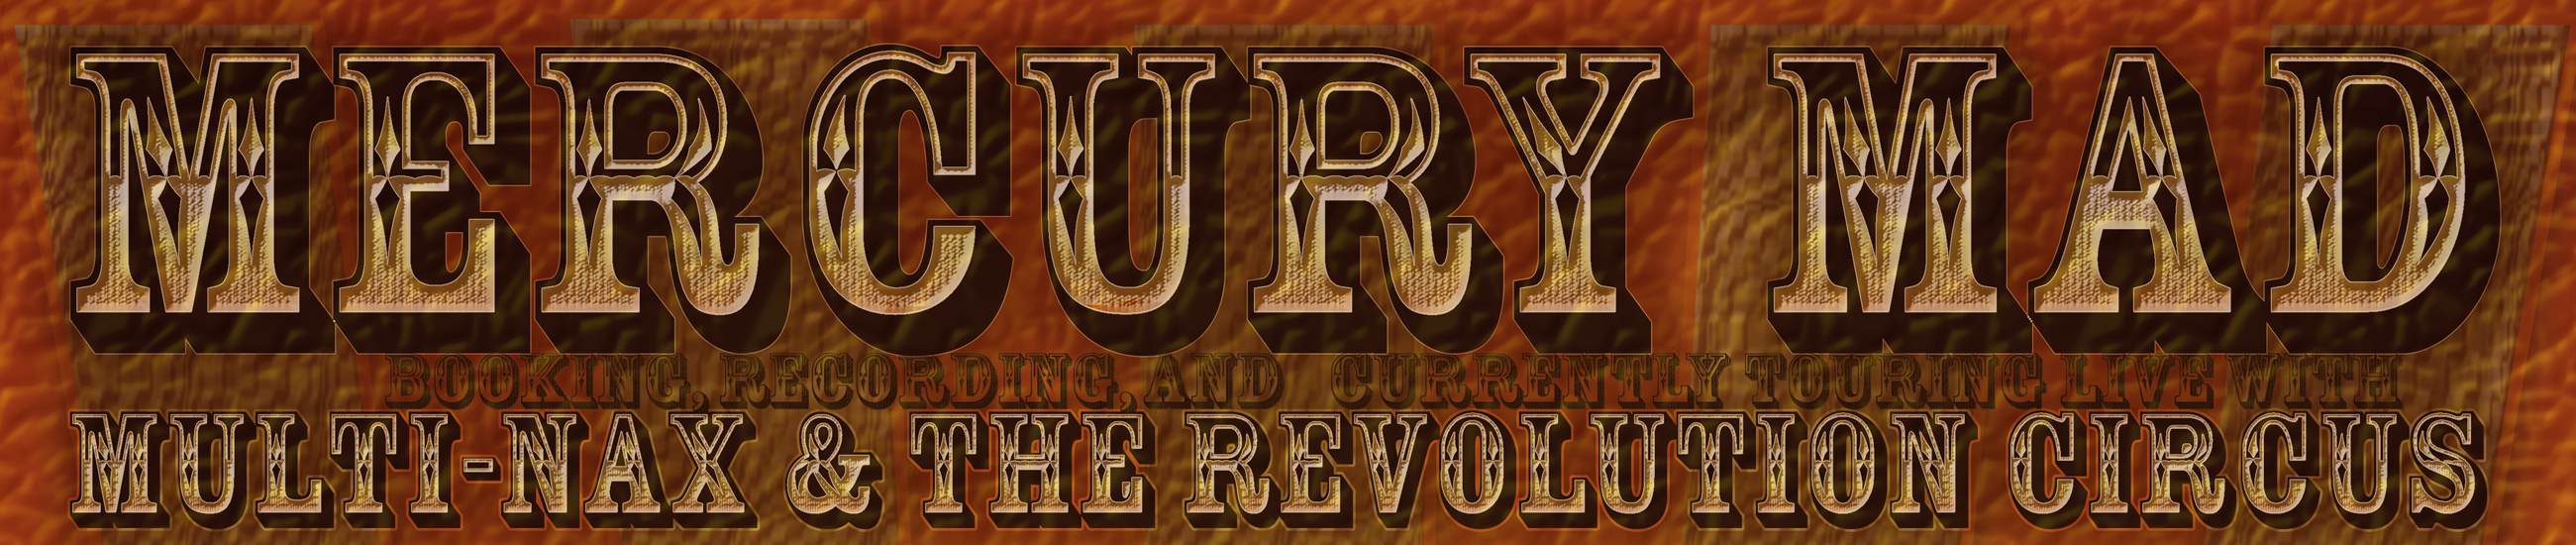 Mercury Mad @ Reverb nation.com!